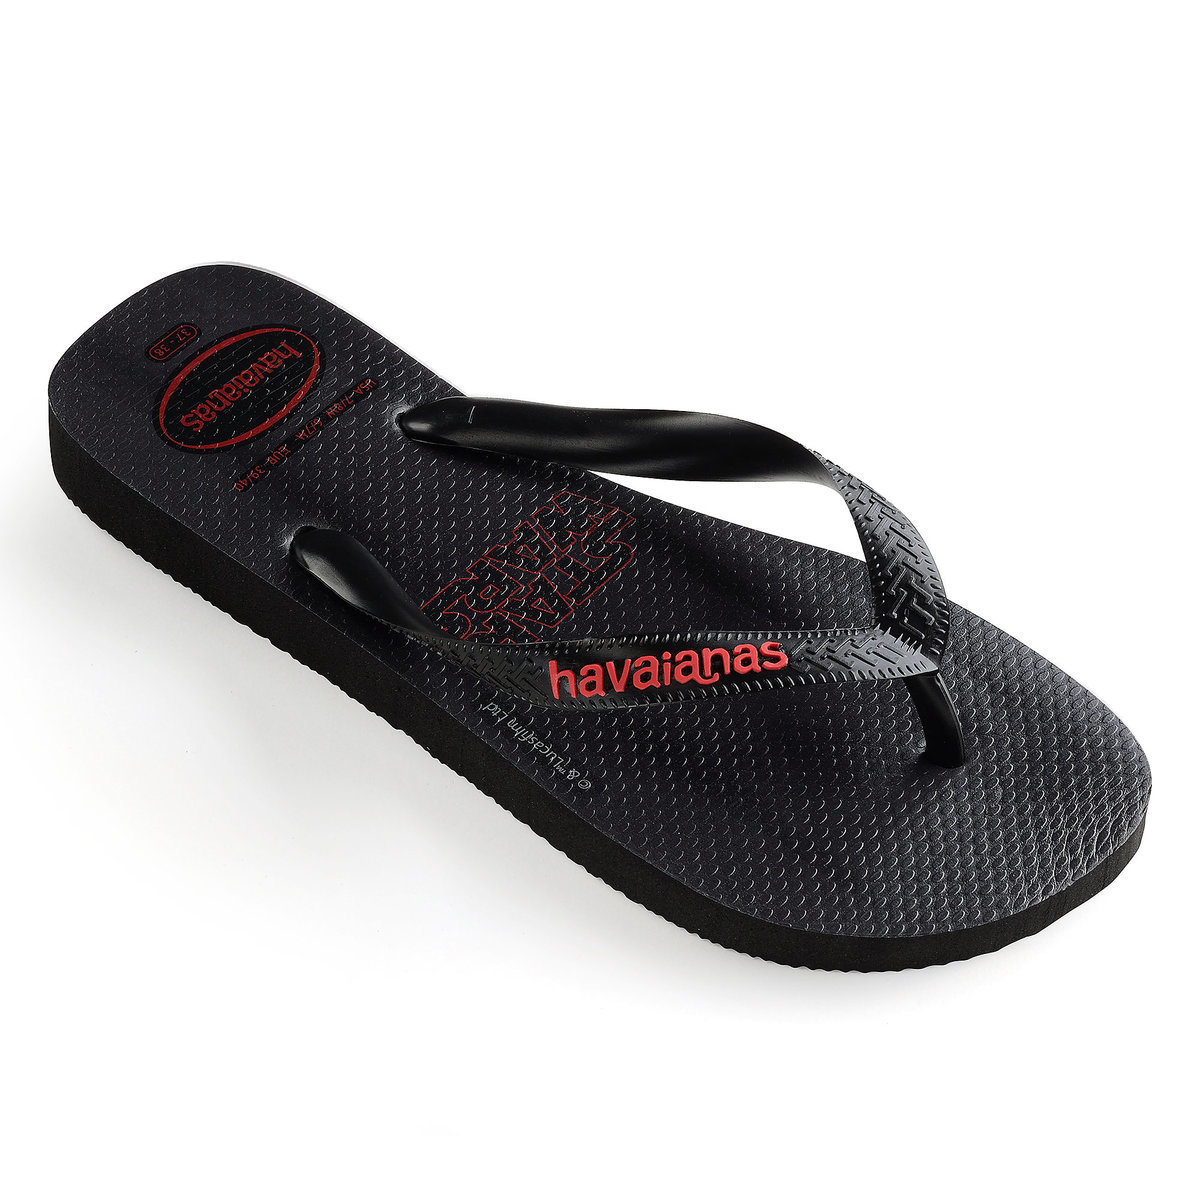 4039903c2 Product Image of Darth Vader Flip Flops for Men by Havaianas   1